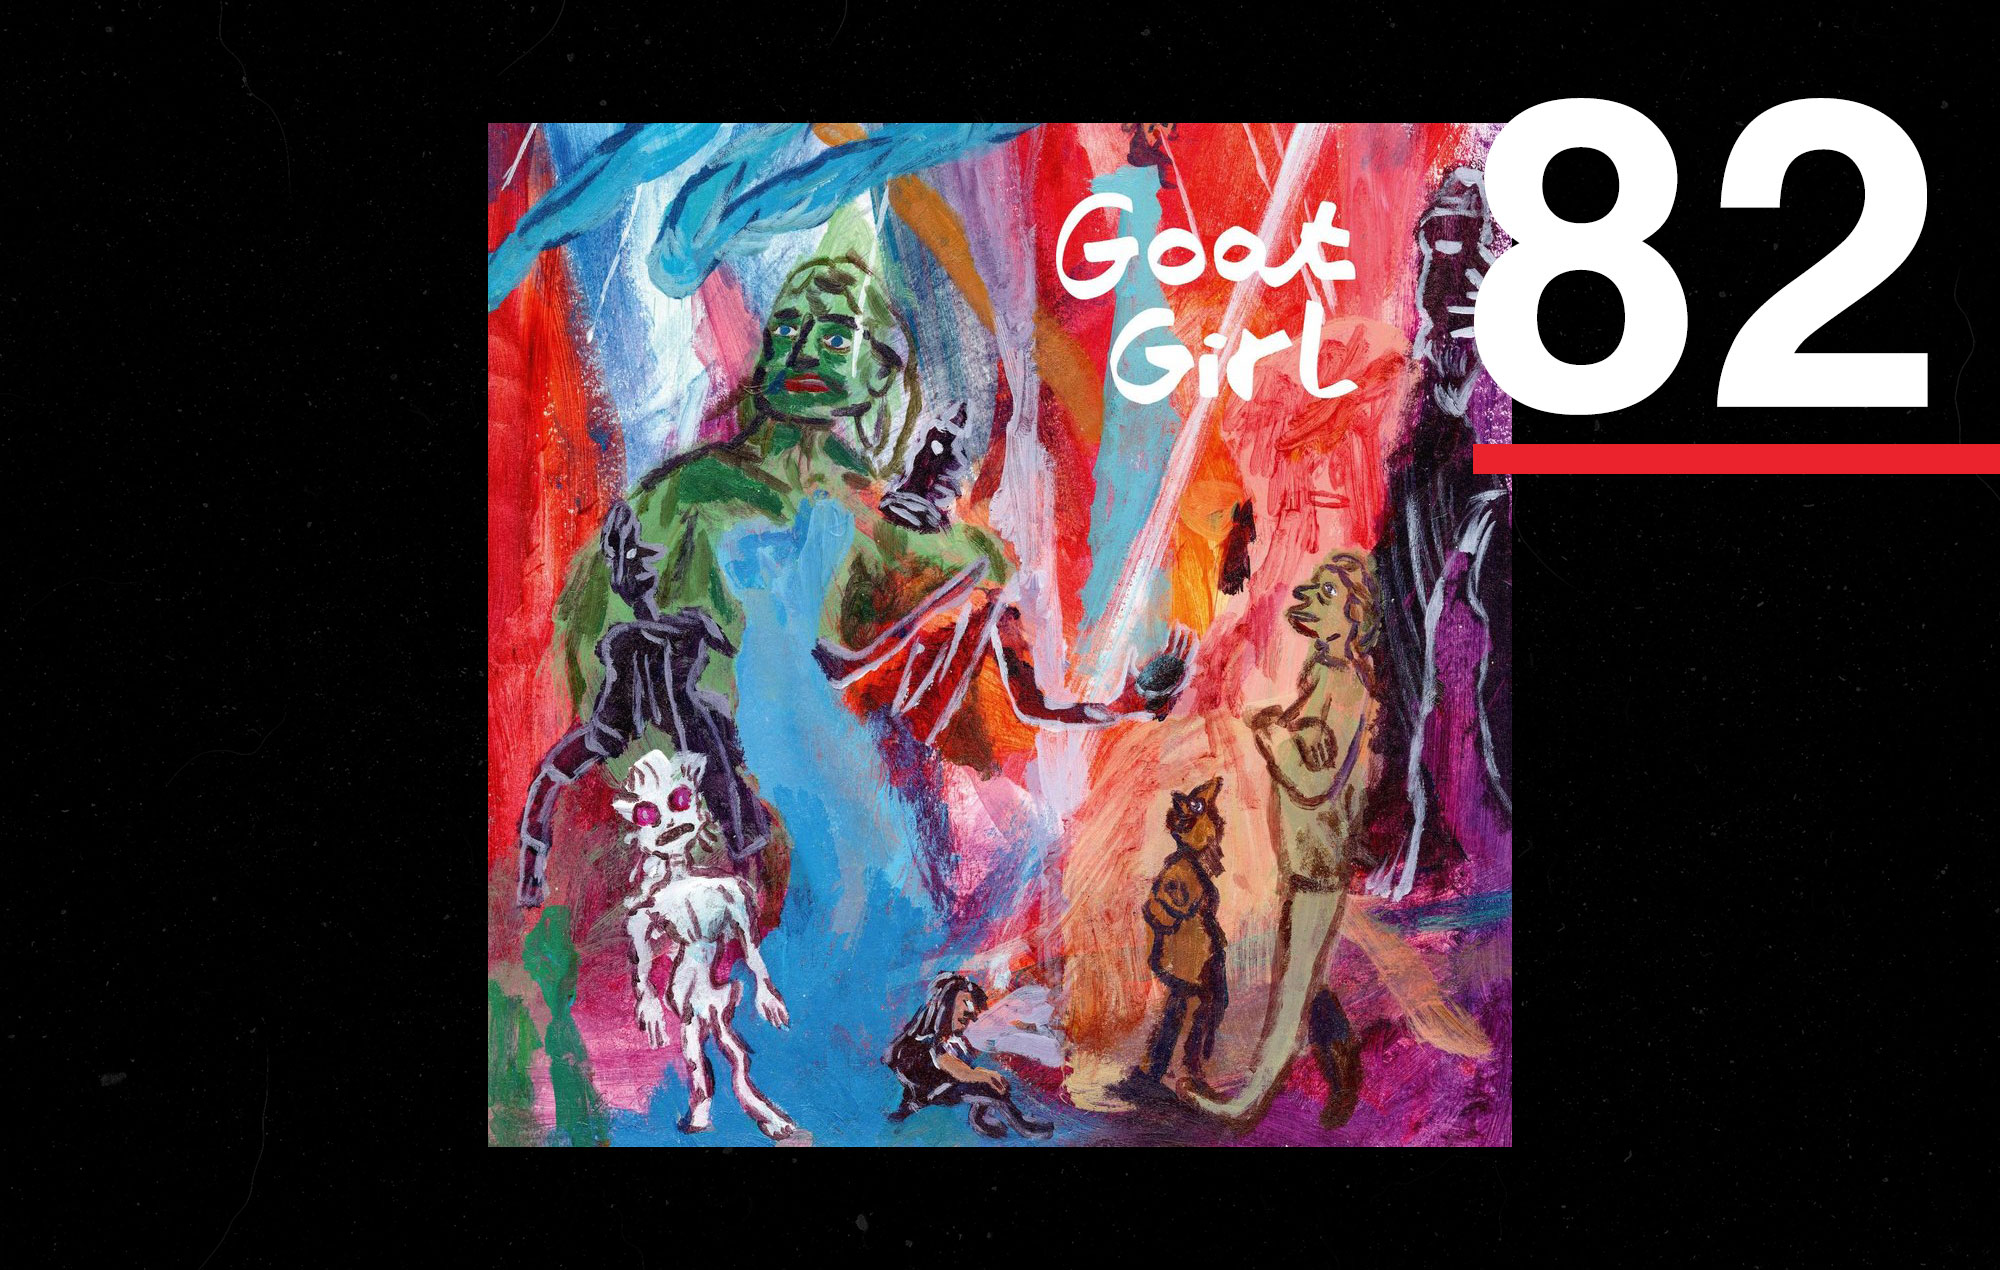 Goat Girl | Best albums of 2018